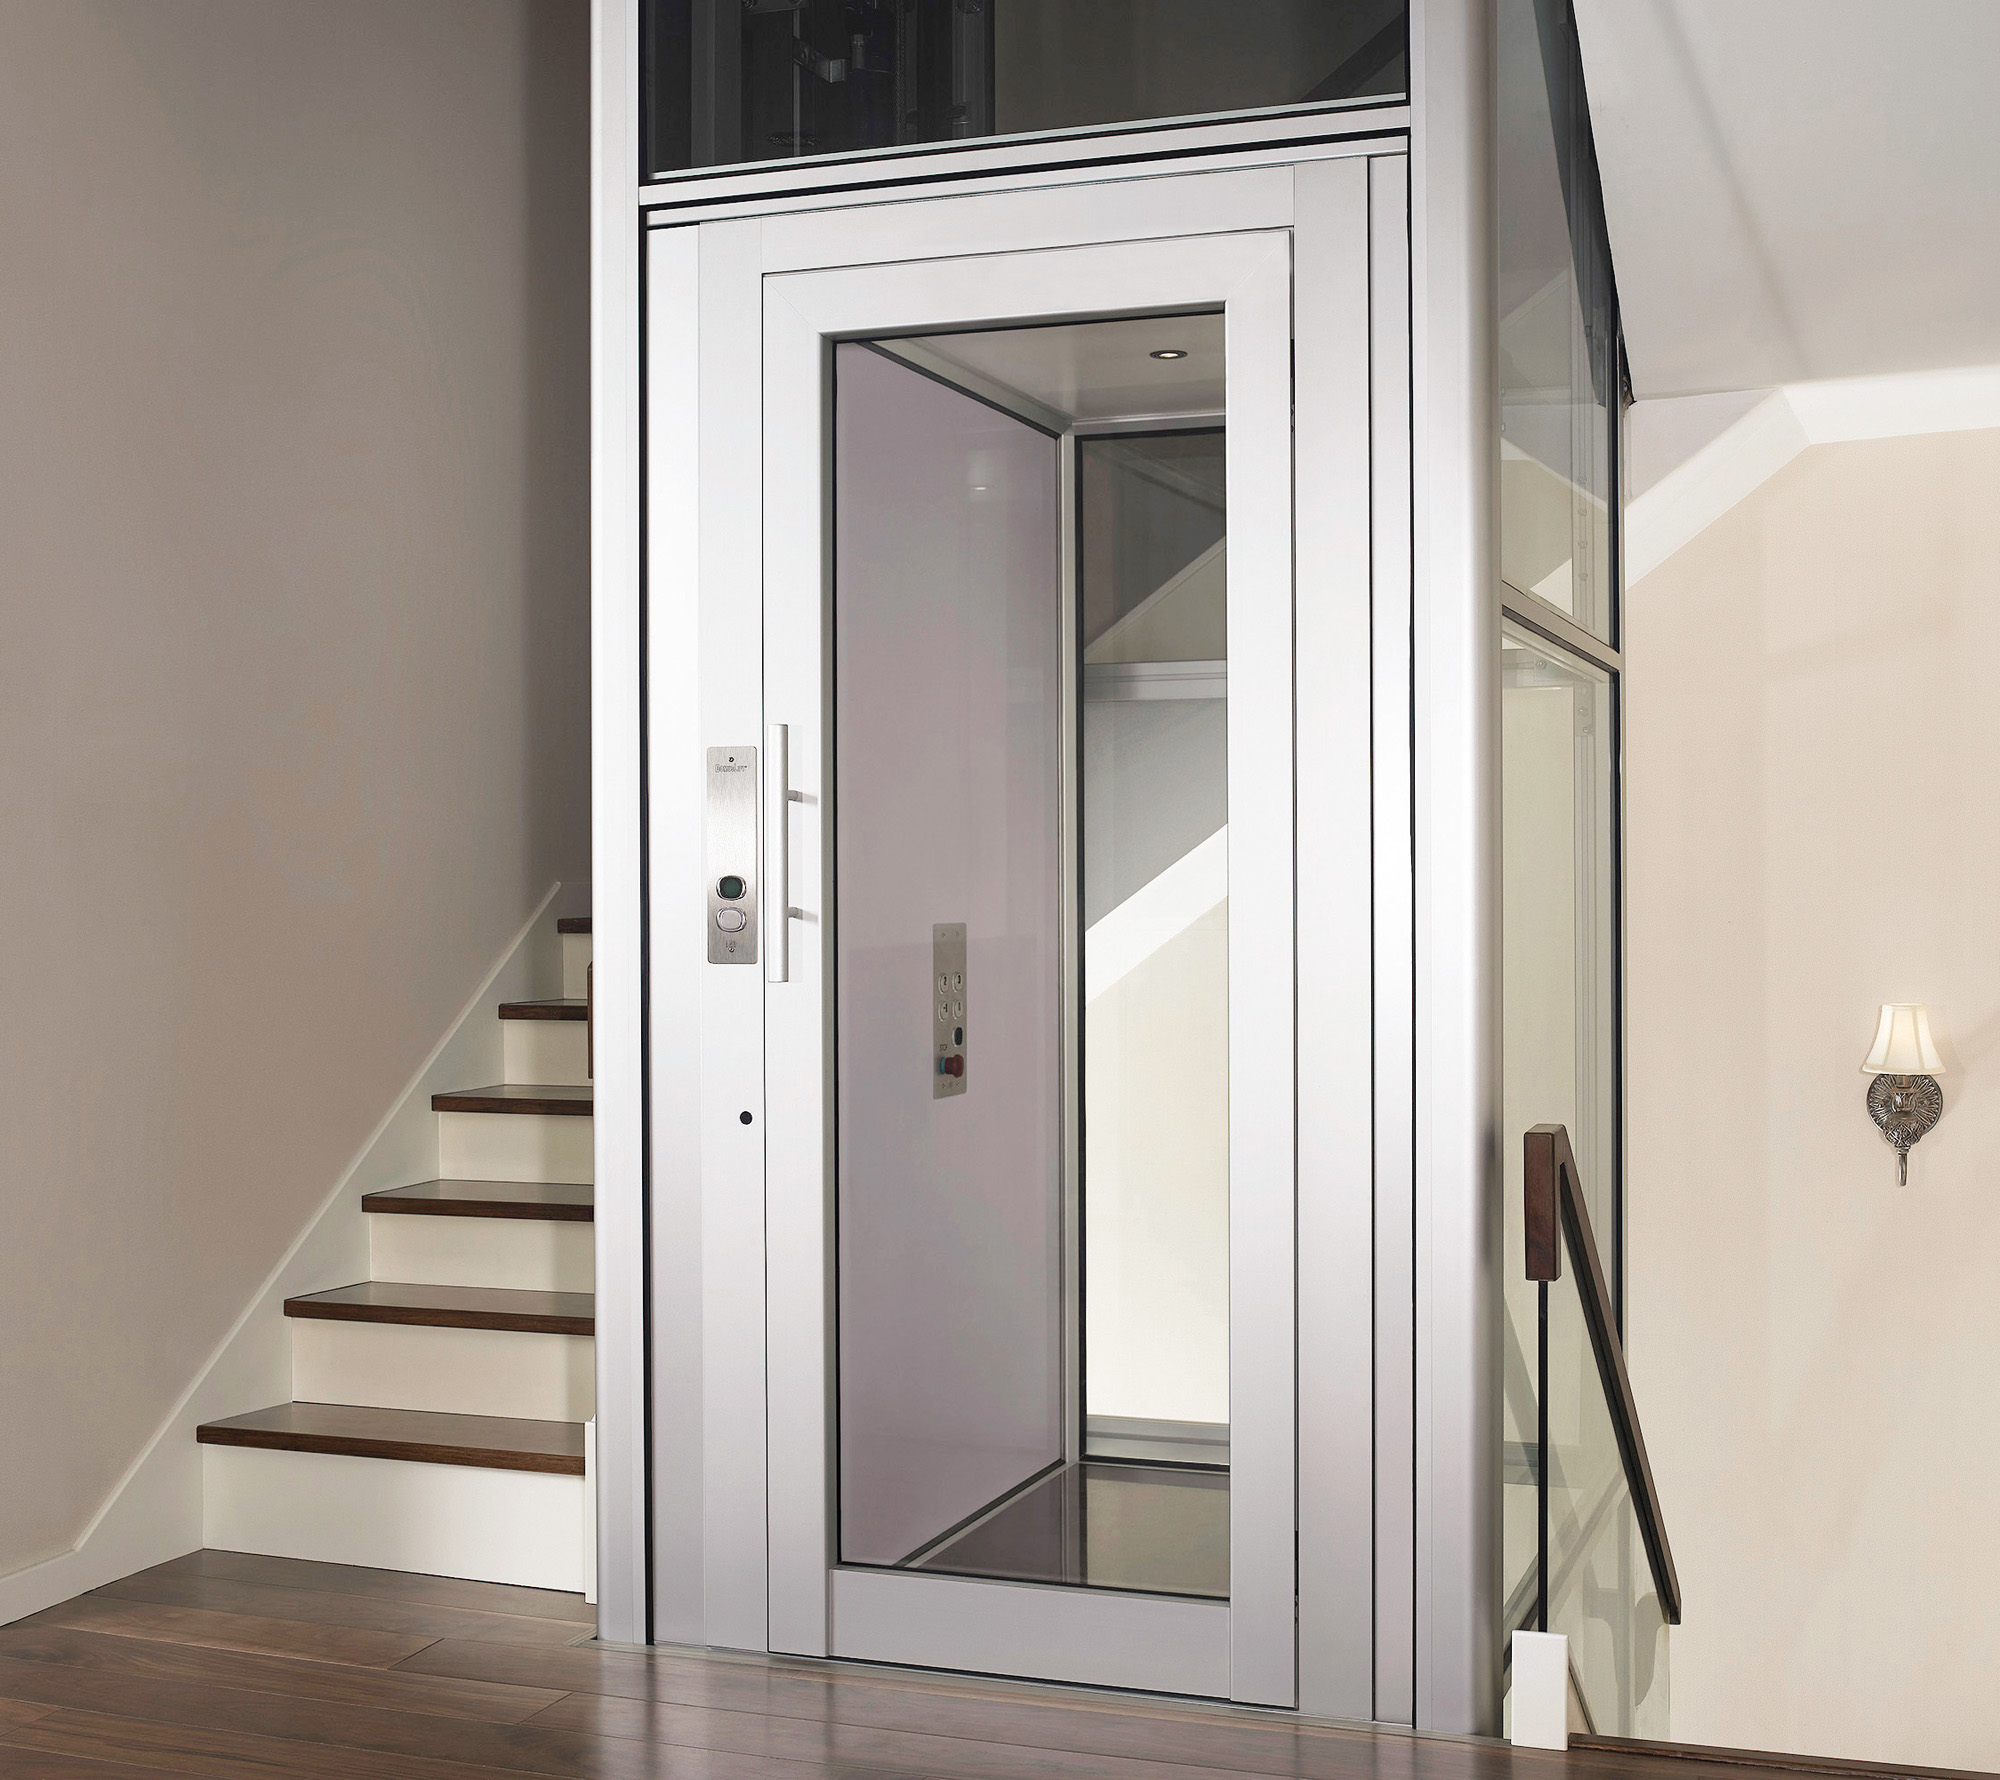 Mini ascensore domuslift igv group - Ascensore in casa ...